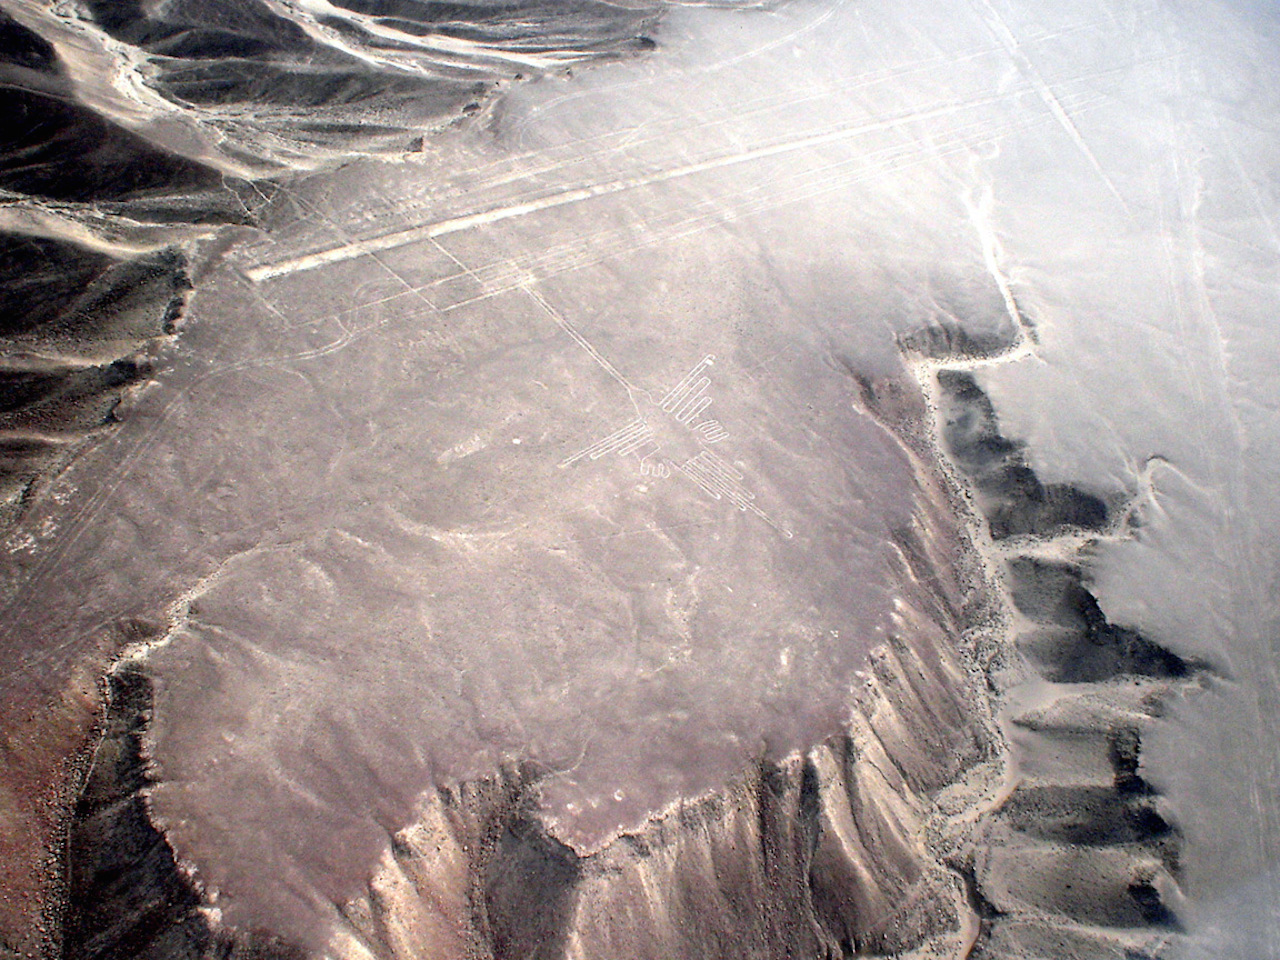 """Aerial view of the """"Hummingbird"""" formation at the Nazca lines site in southern Peru (photo by Martin St-Amant via Wikimedia Commons)"""